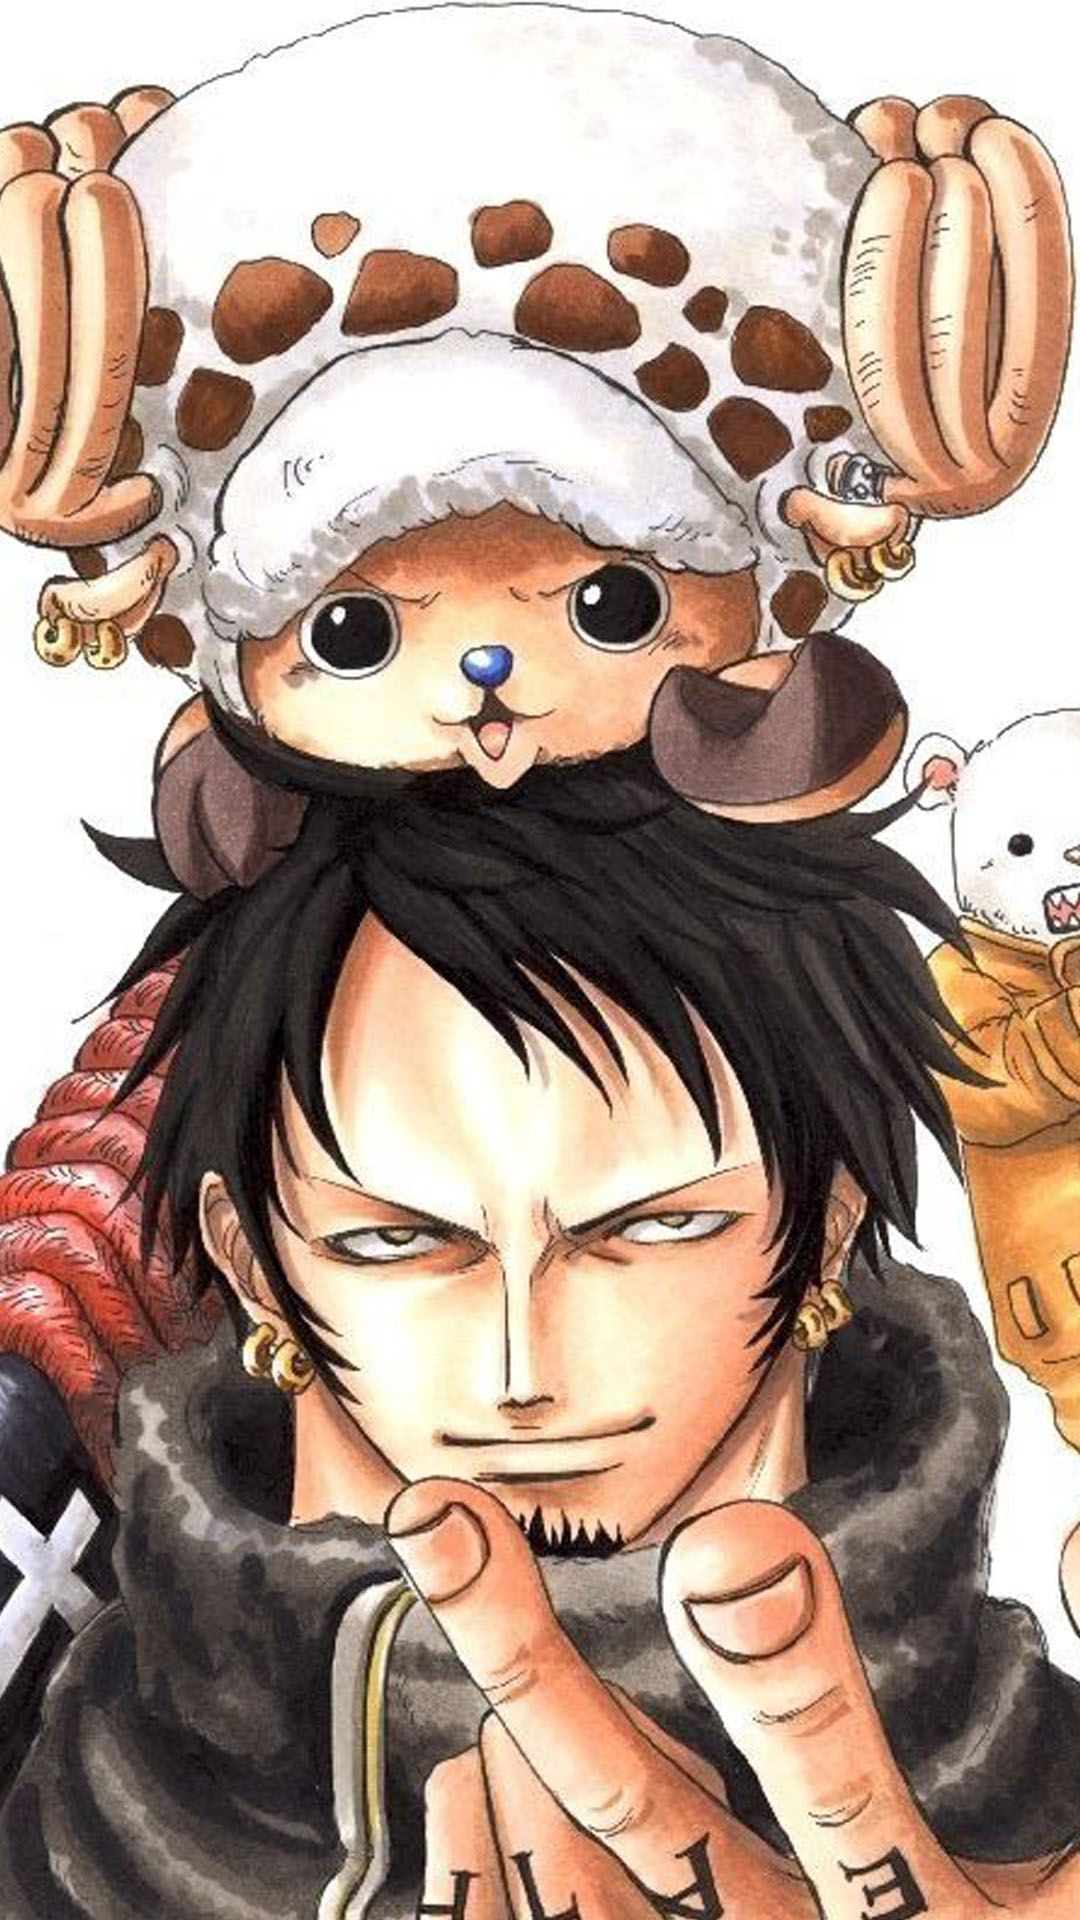 Law Wallpaper One Piece Chopper And Law 2023330 Hd Wallpaper Backgrounds Download